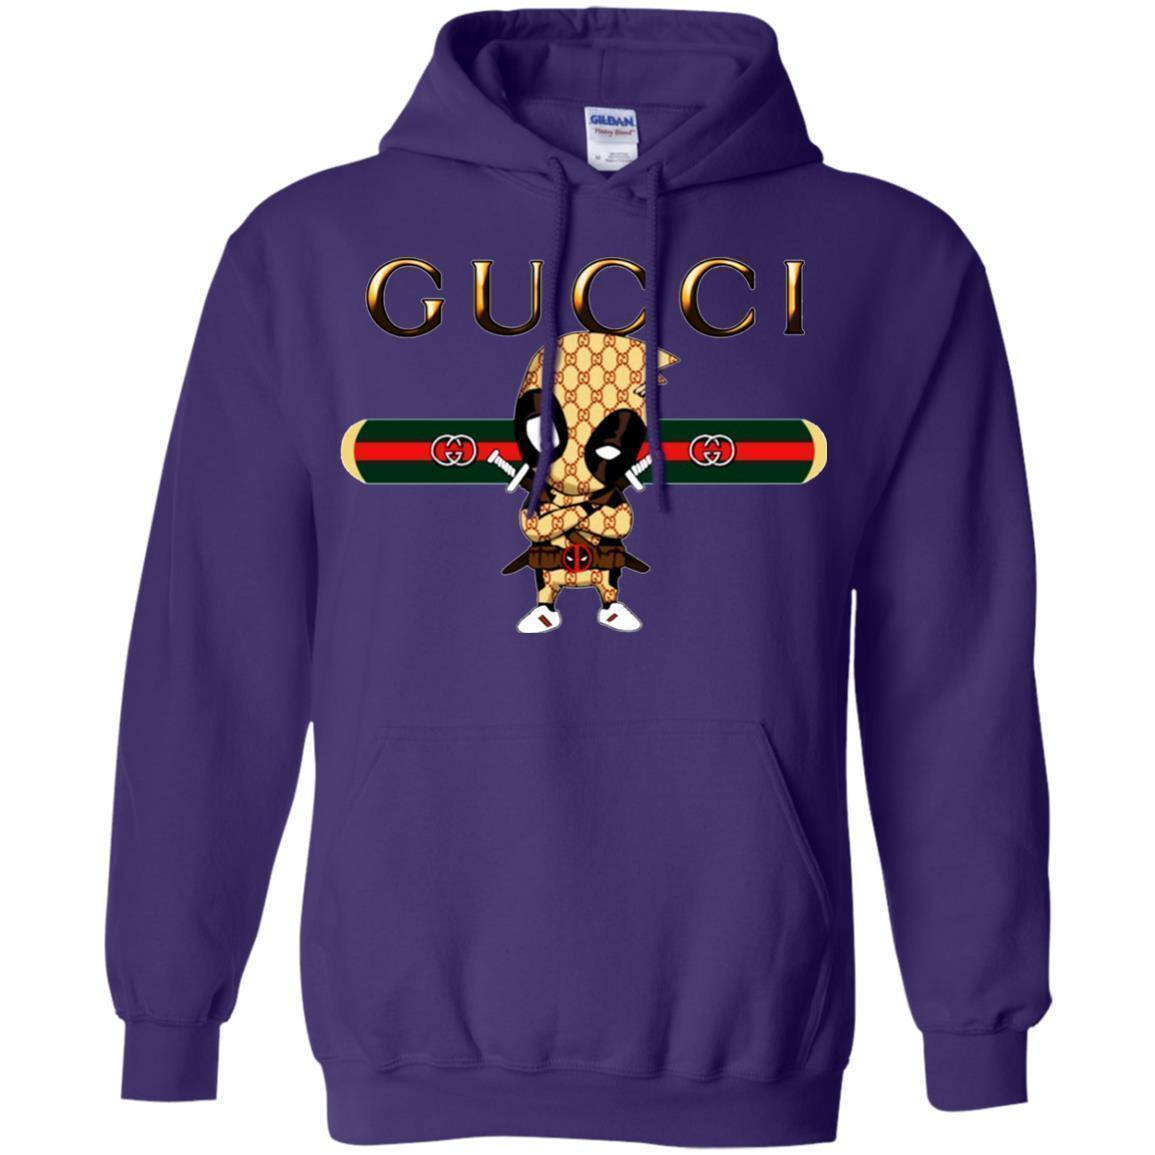 official site affordable price great look Deadpool Gucci Hoodie - NINONINE